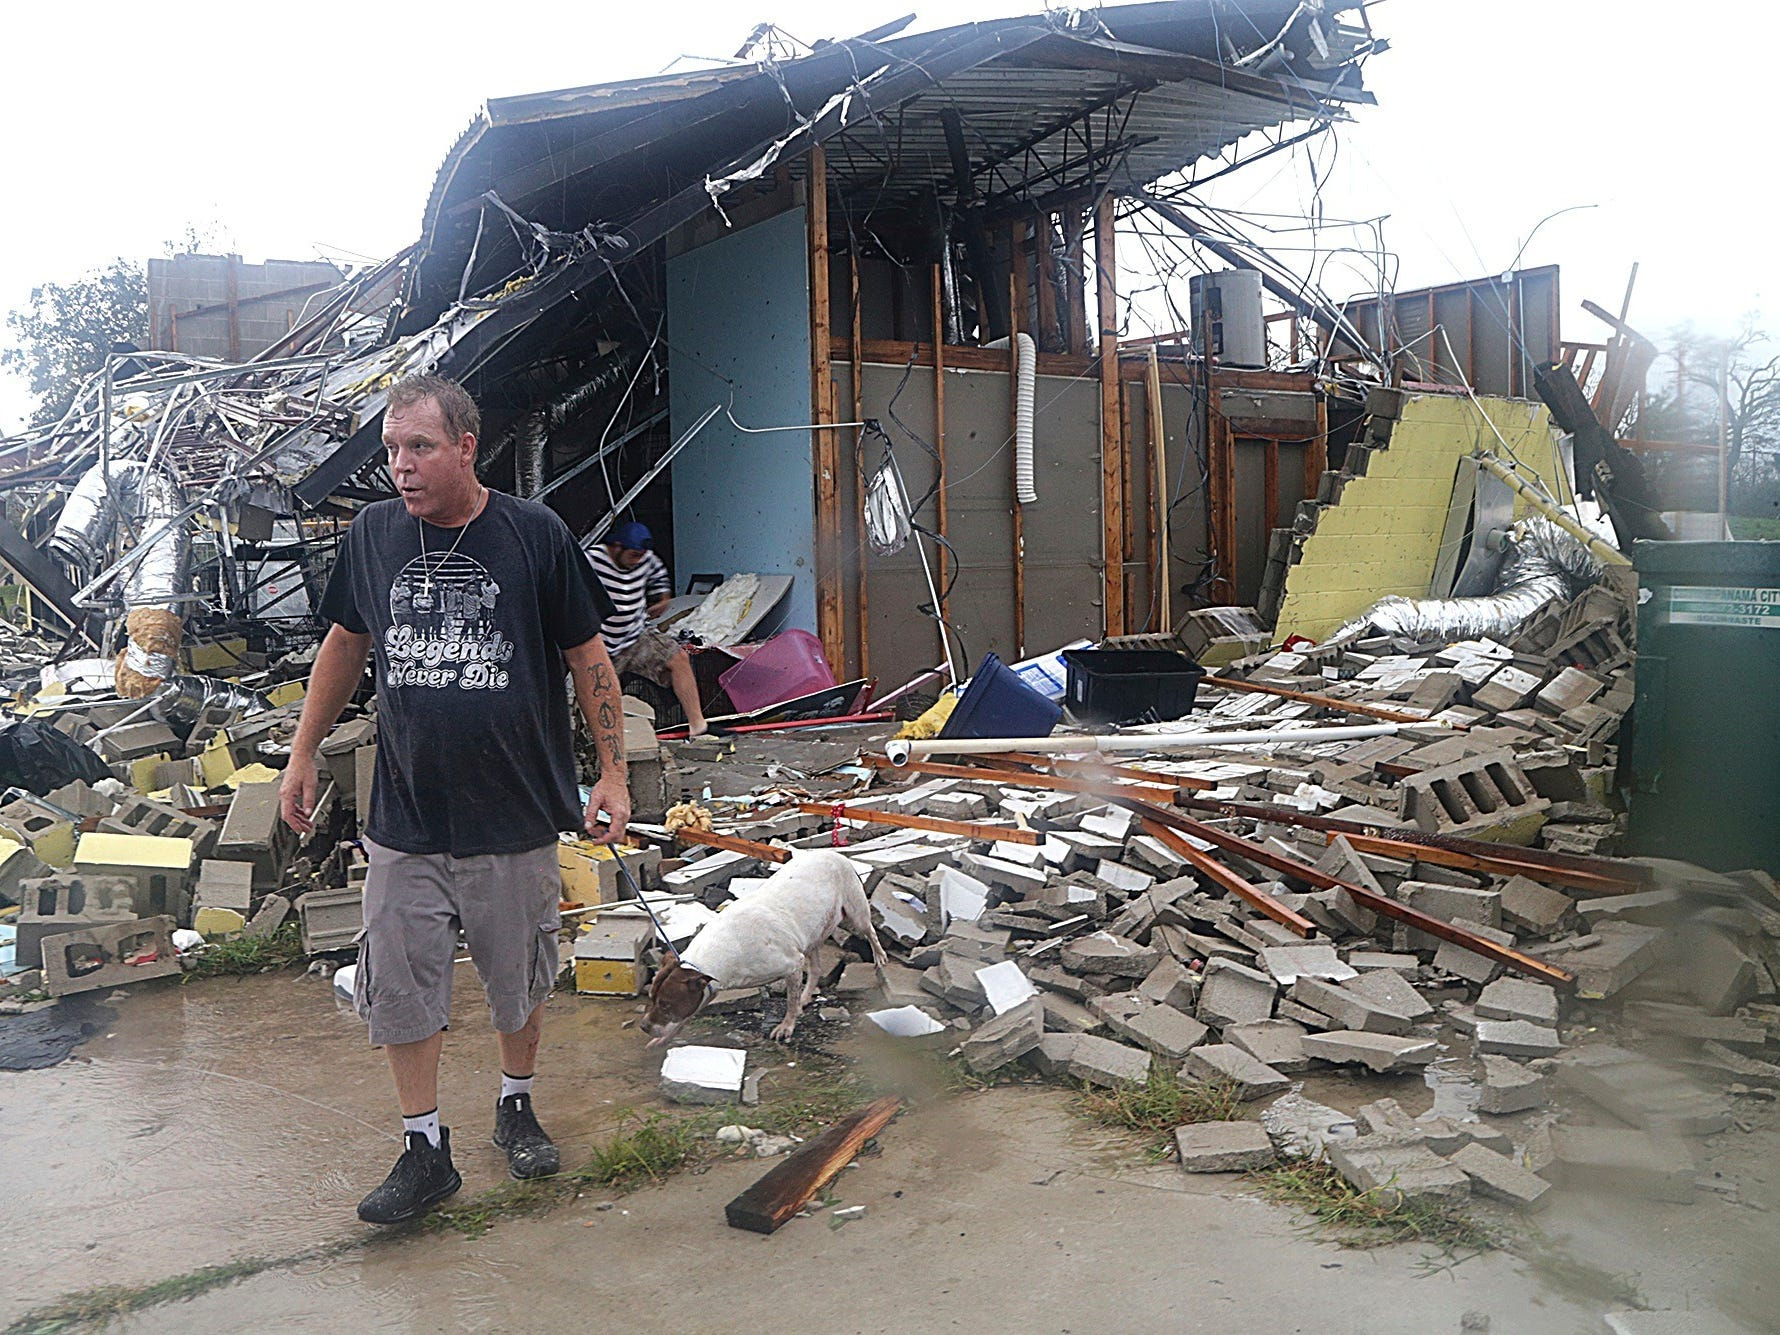 Brian Bon inspects damages in the Panama City downtown area after Hurricane Michael made landfall in Panama City, Fla., Wednesday, Oct. 10, 2018. Supercharged by abnormally warm waters in the Gulf of Mexico, Hurricane Michael slammed into the Florida Panhandle with terrifying winds of 155 mph Wednesday, splintering homes and submerging neighborhoods before continuing its march inland.